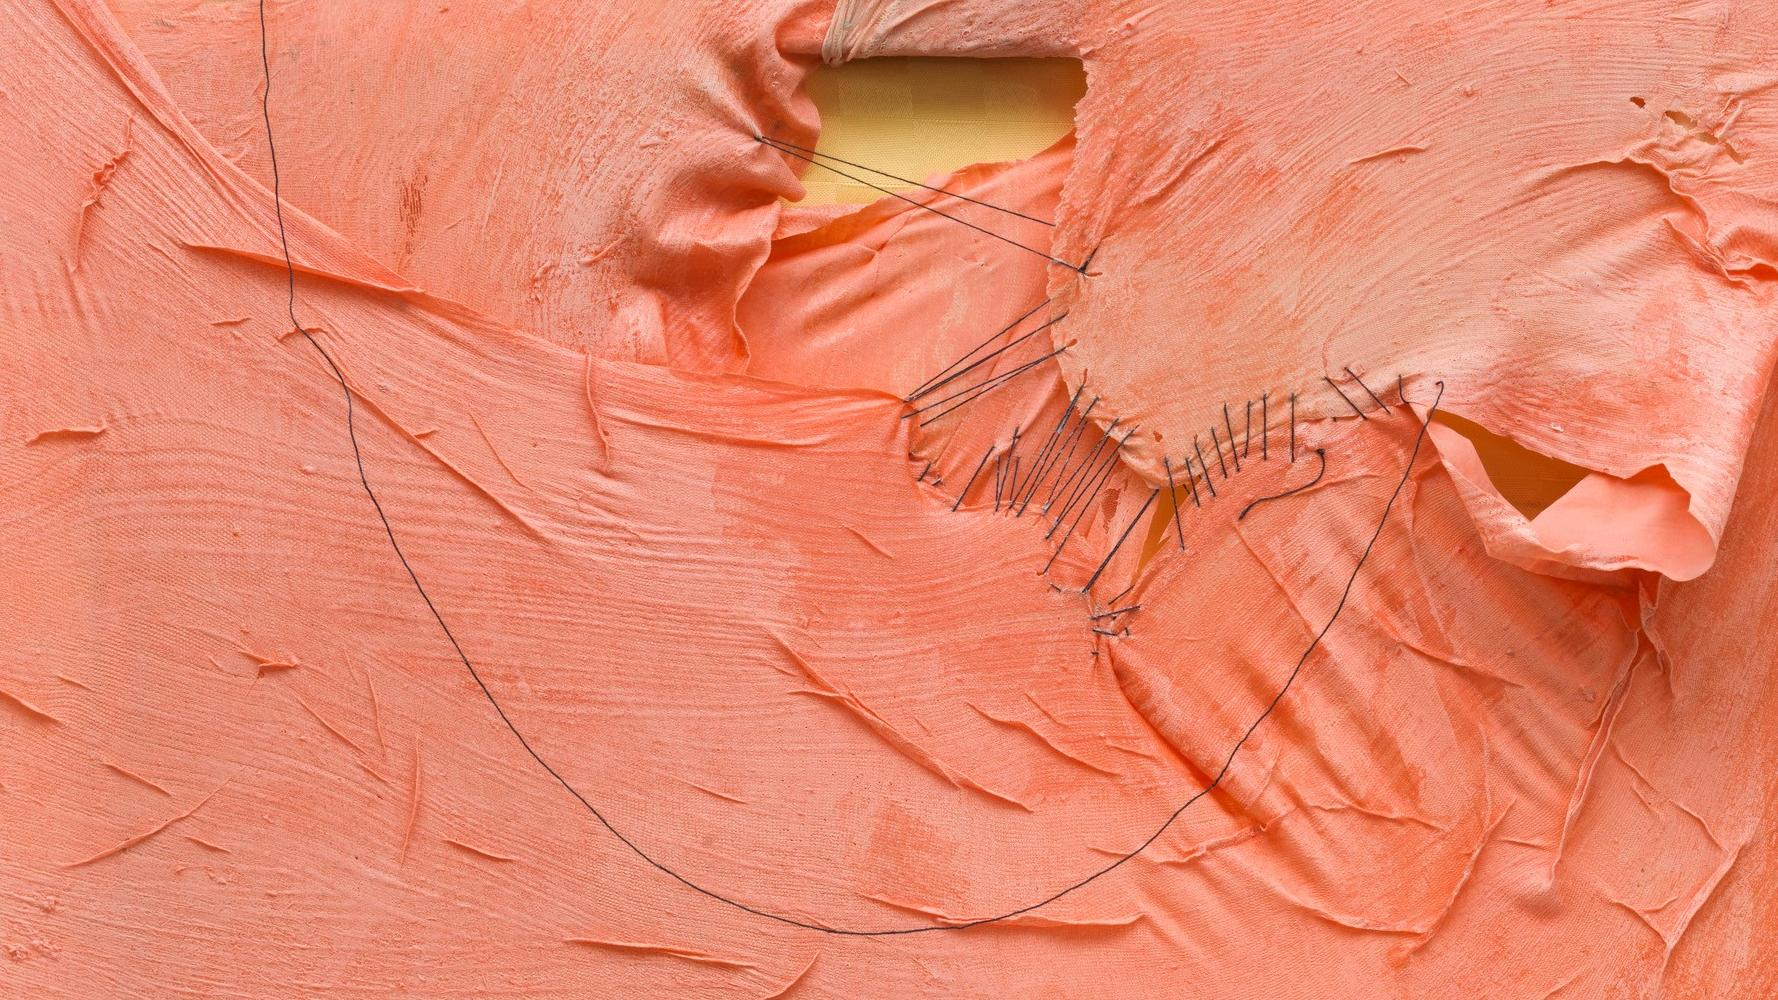 Leda Bourgogne, Bloomer, 2018, Latex auf Nylon, Lack, Tischtuch, Faden, 38 x 50 x 8,5 cm, Courtesy BQ, Berlin, Photo Roman März, Berlin